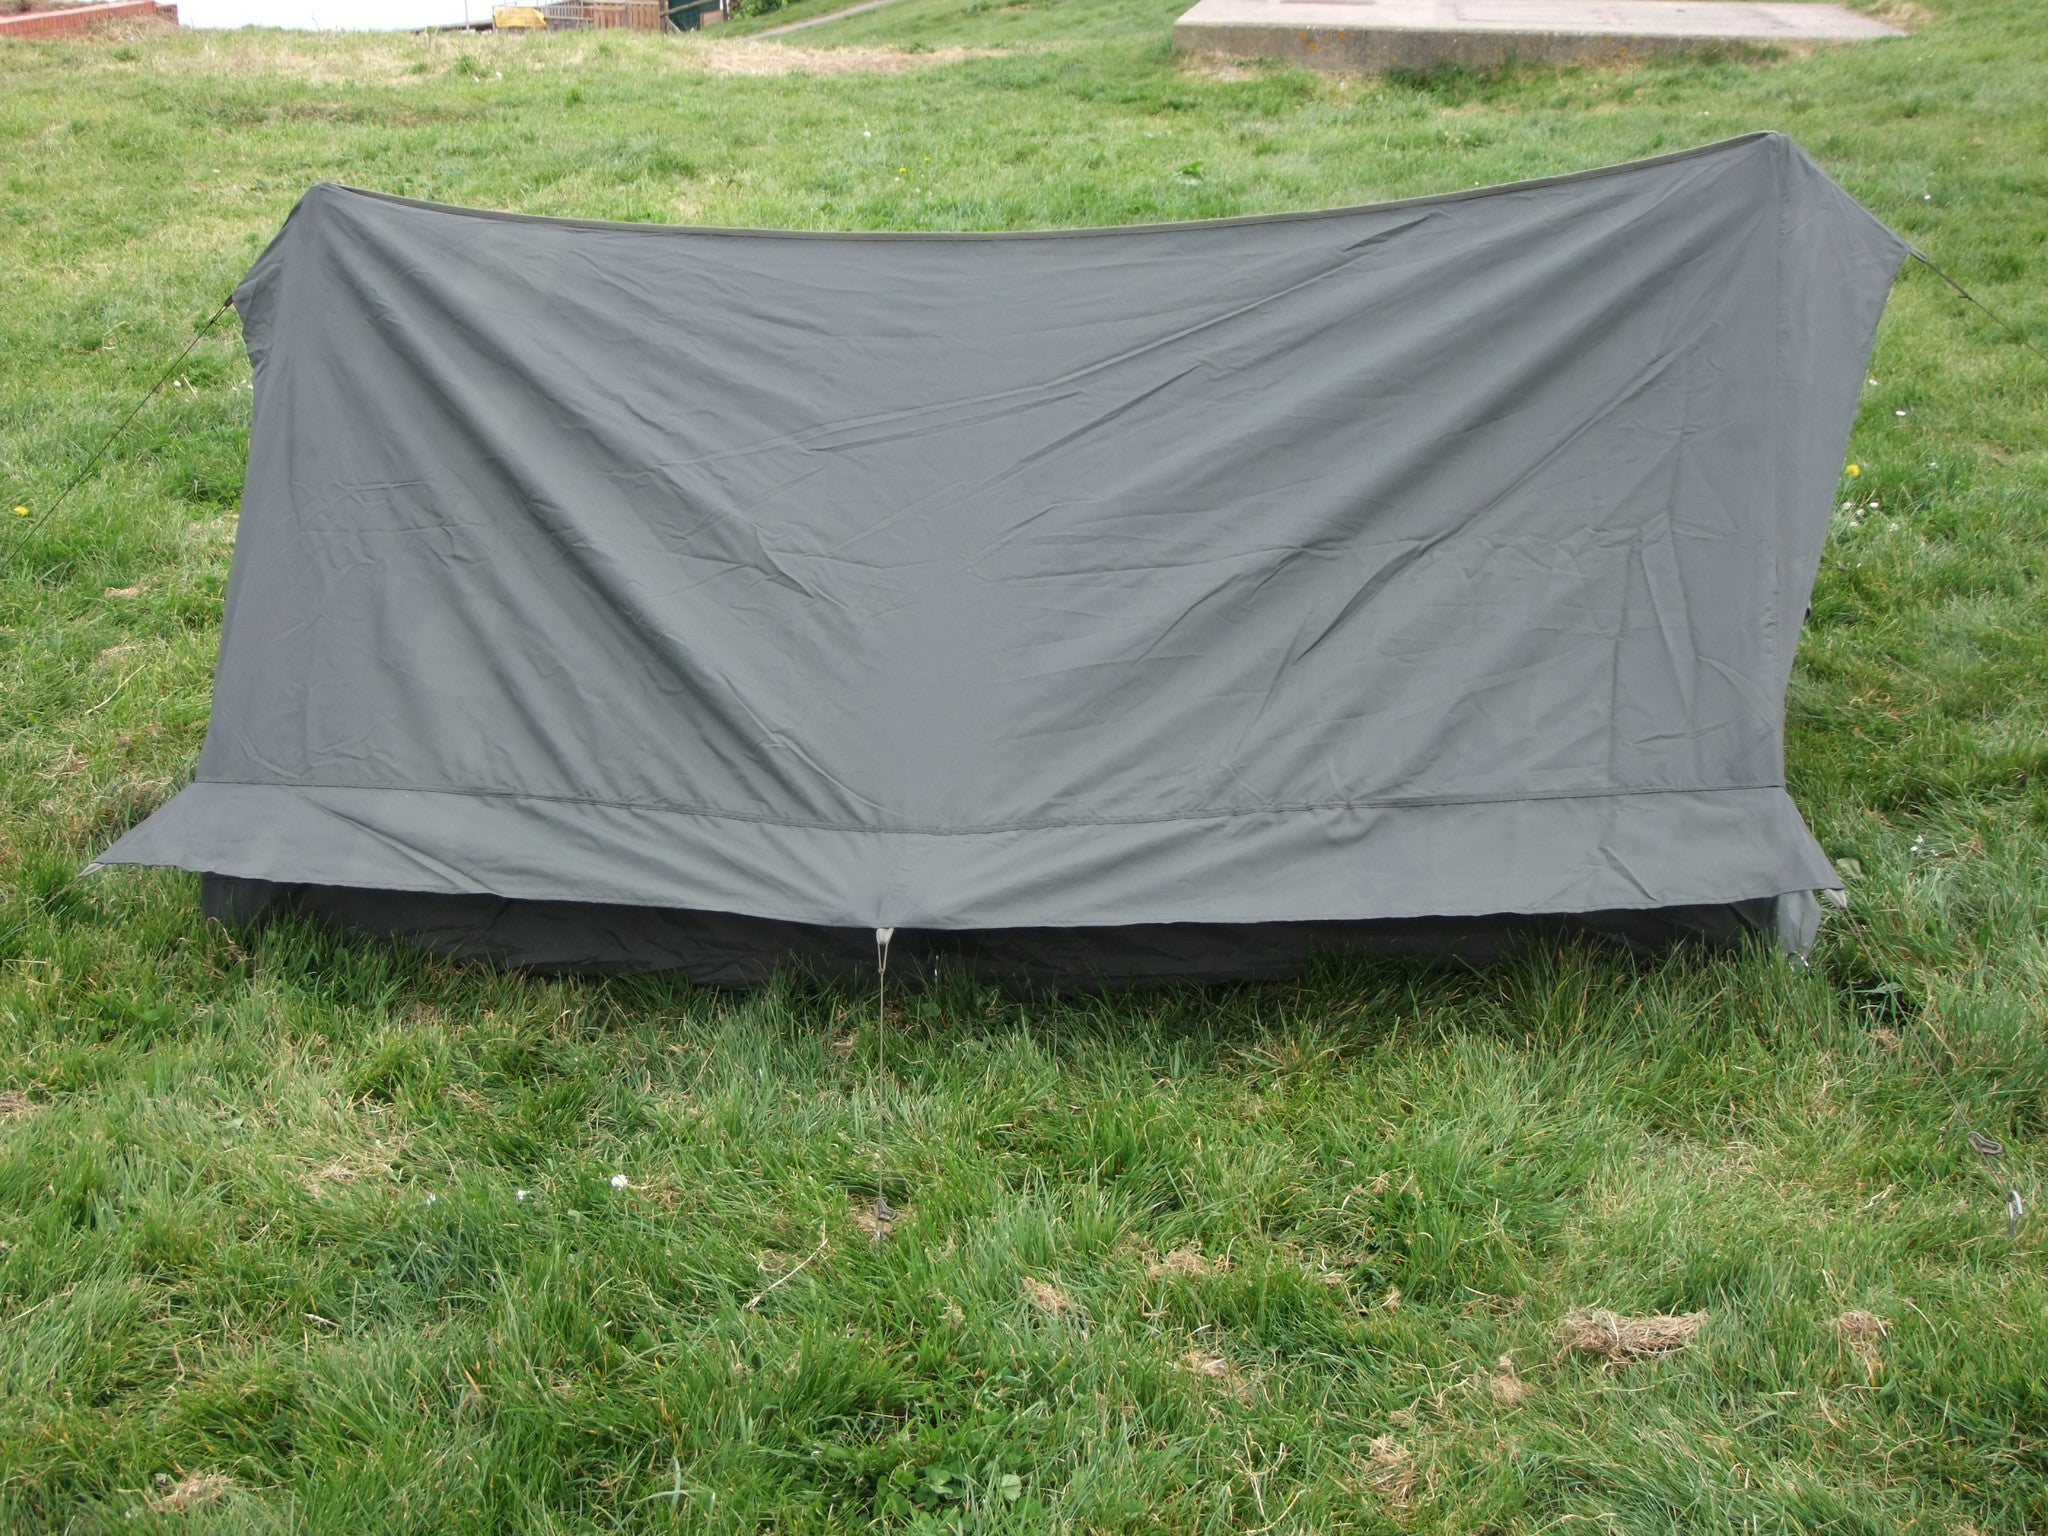 French army issue two man tent. Single door. & French army issue two man tent. Single door. u2013 Golding Surplus